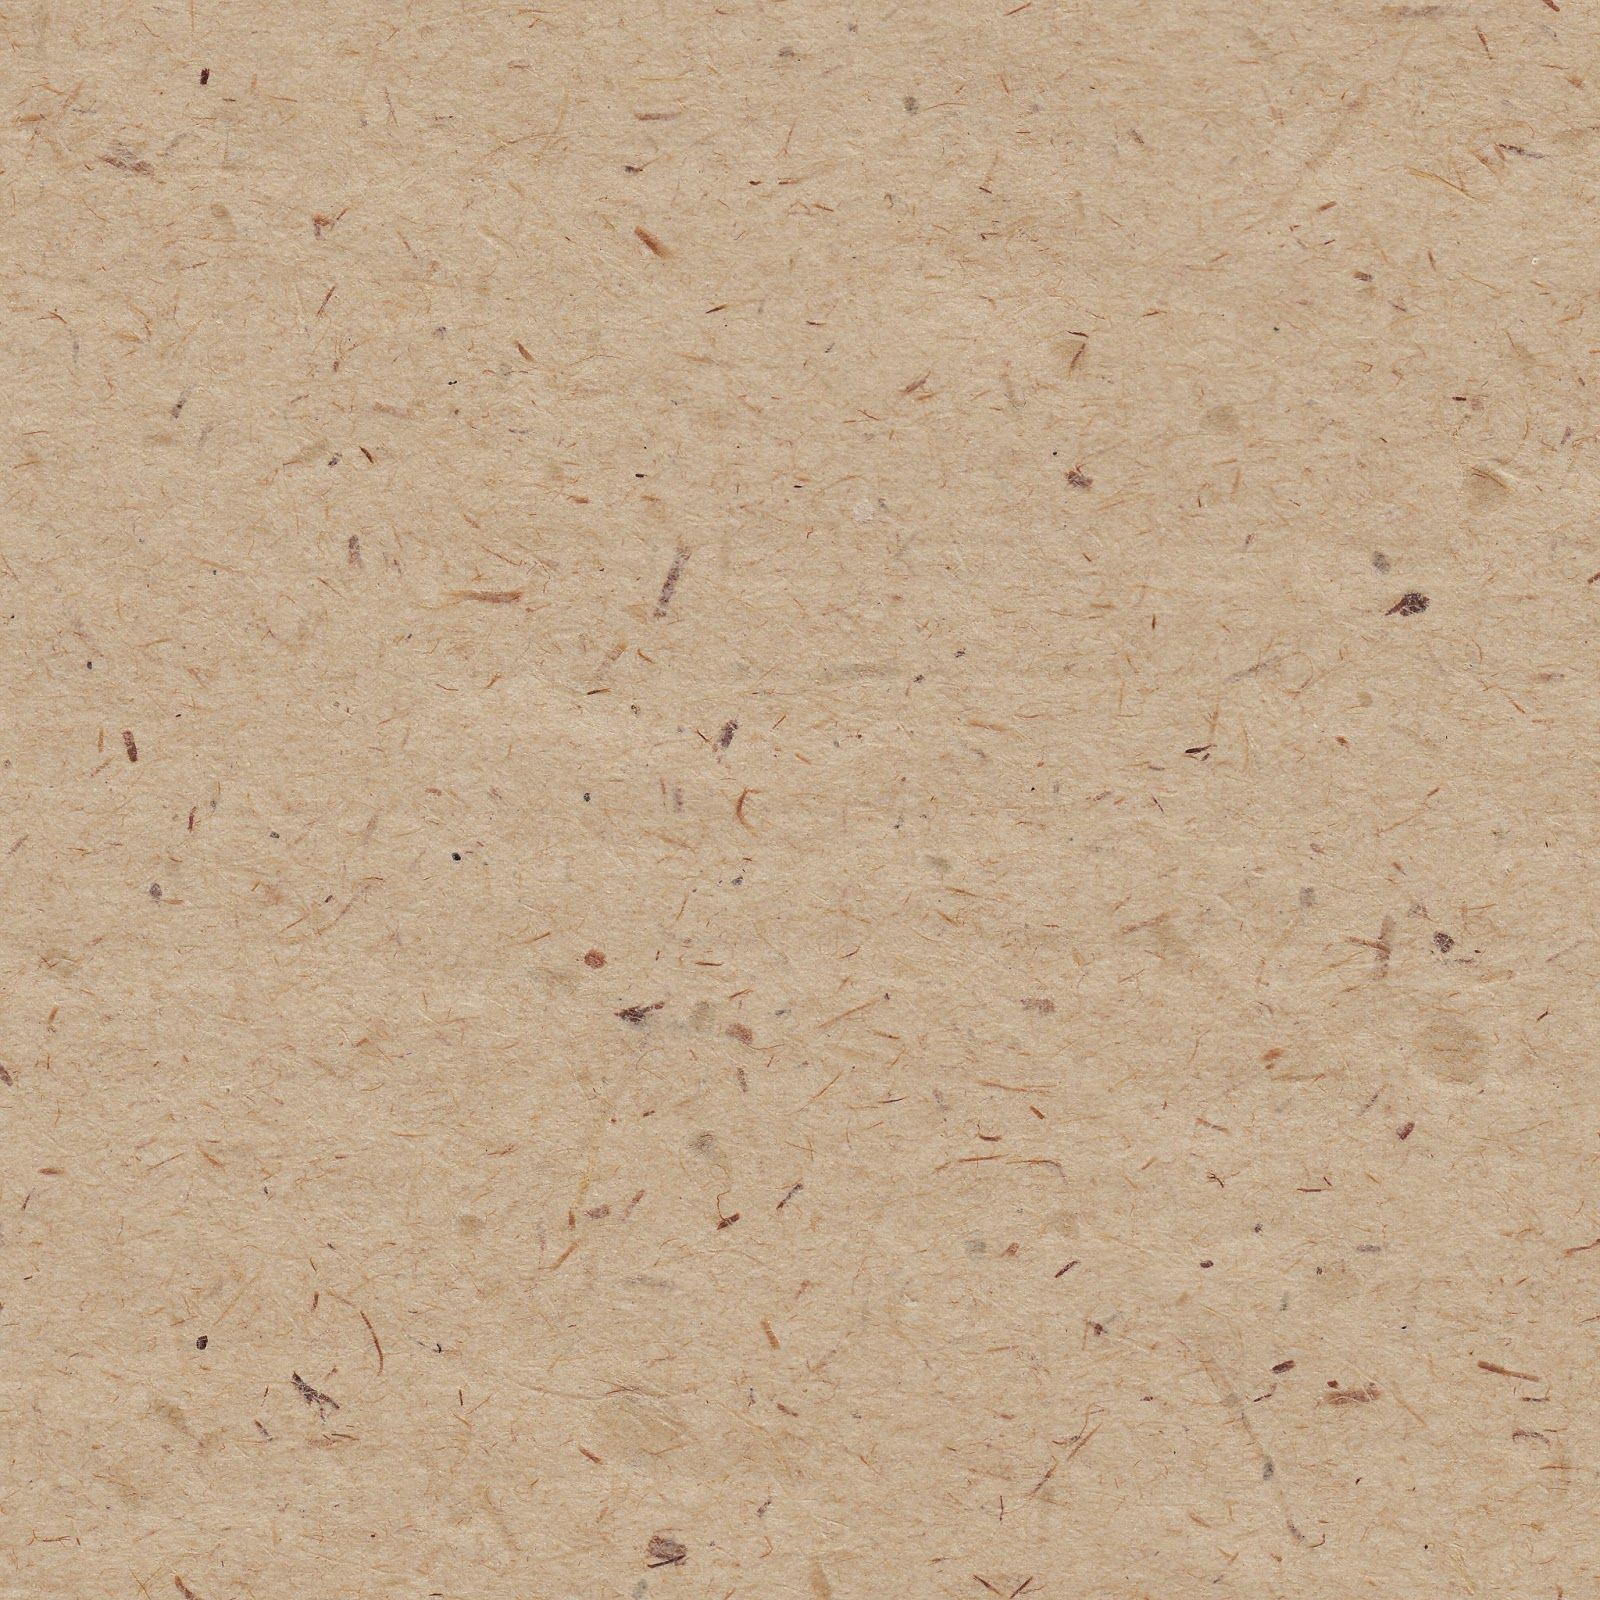 Free High Resolution Paper Texture